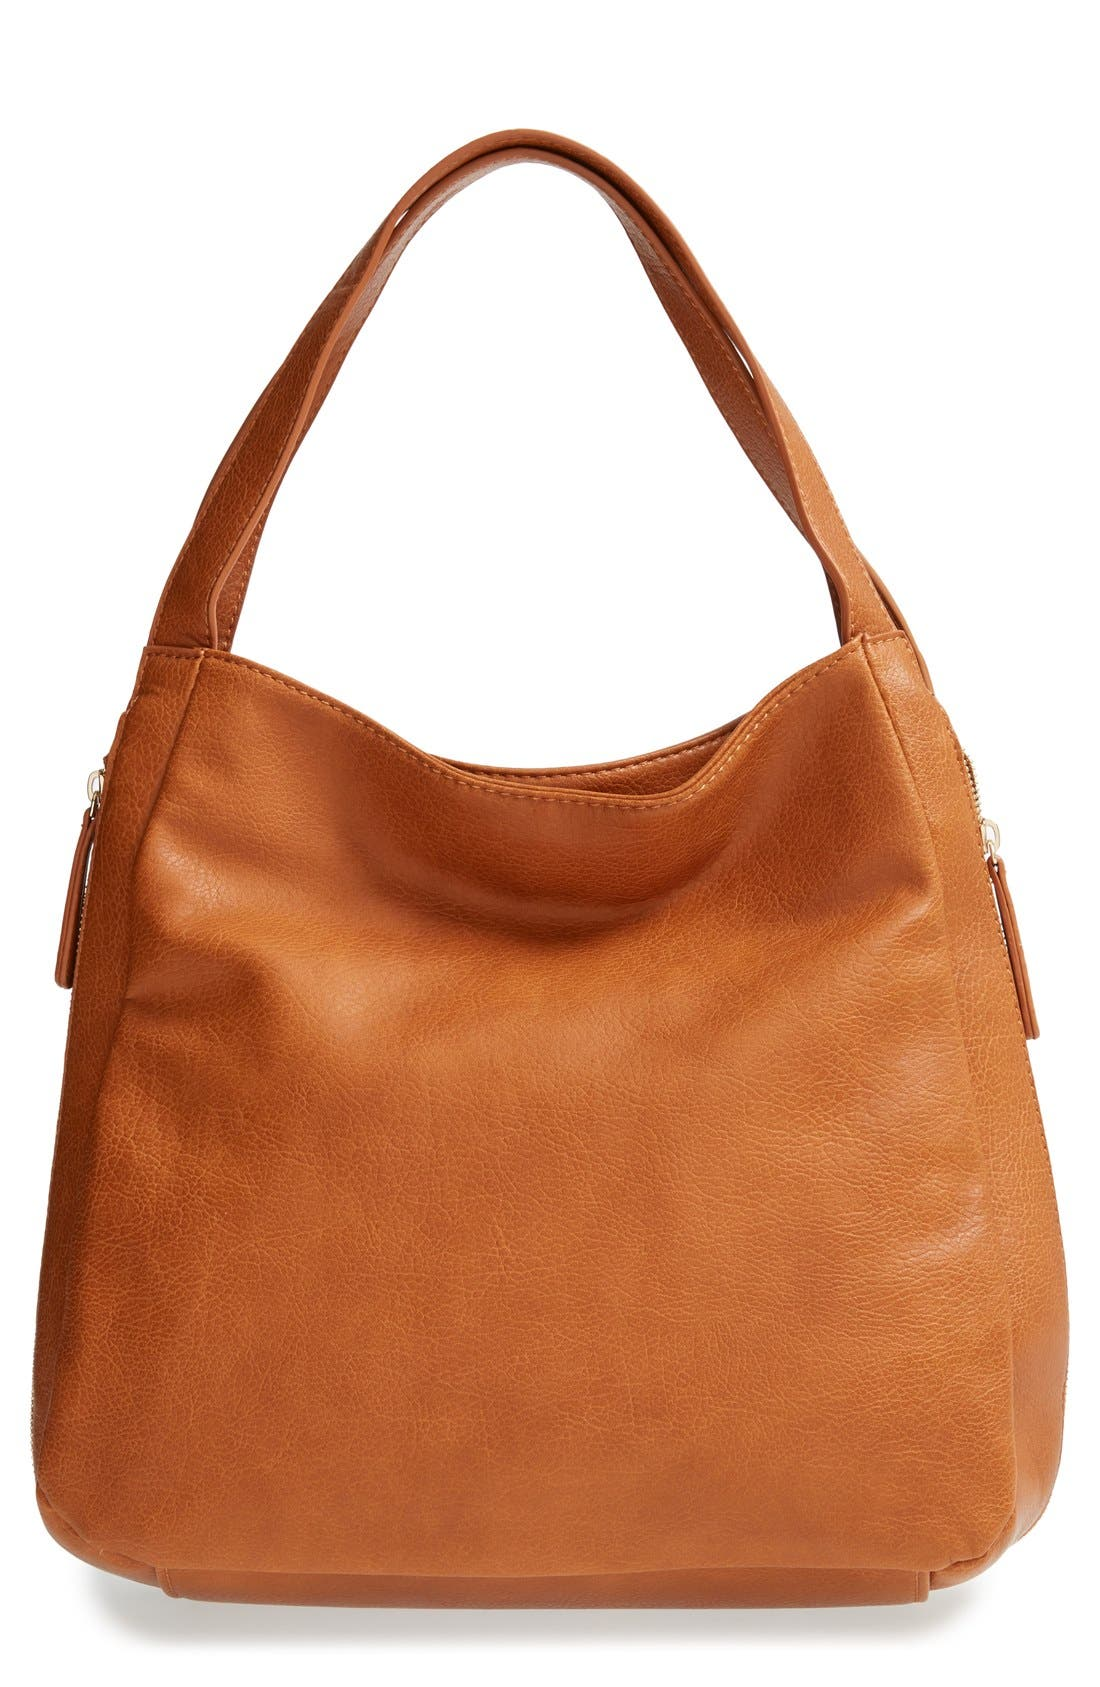 Alternate Image 1 Selected - BP. Side Zip Faux Leather Tote